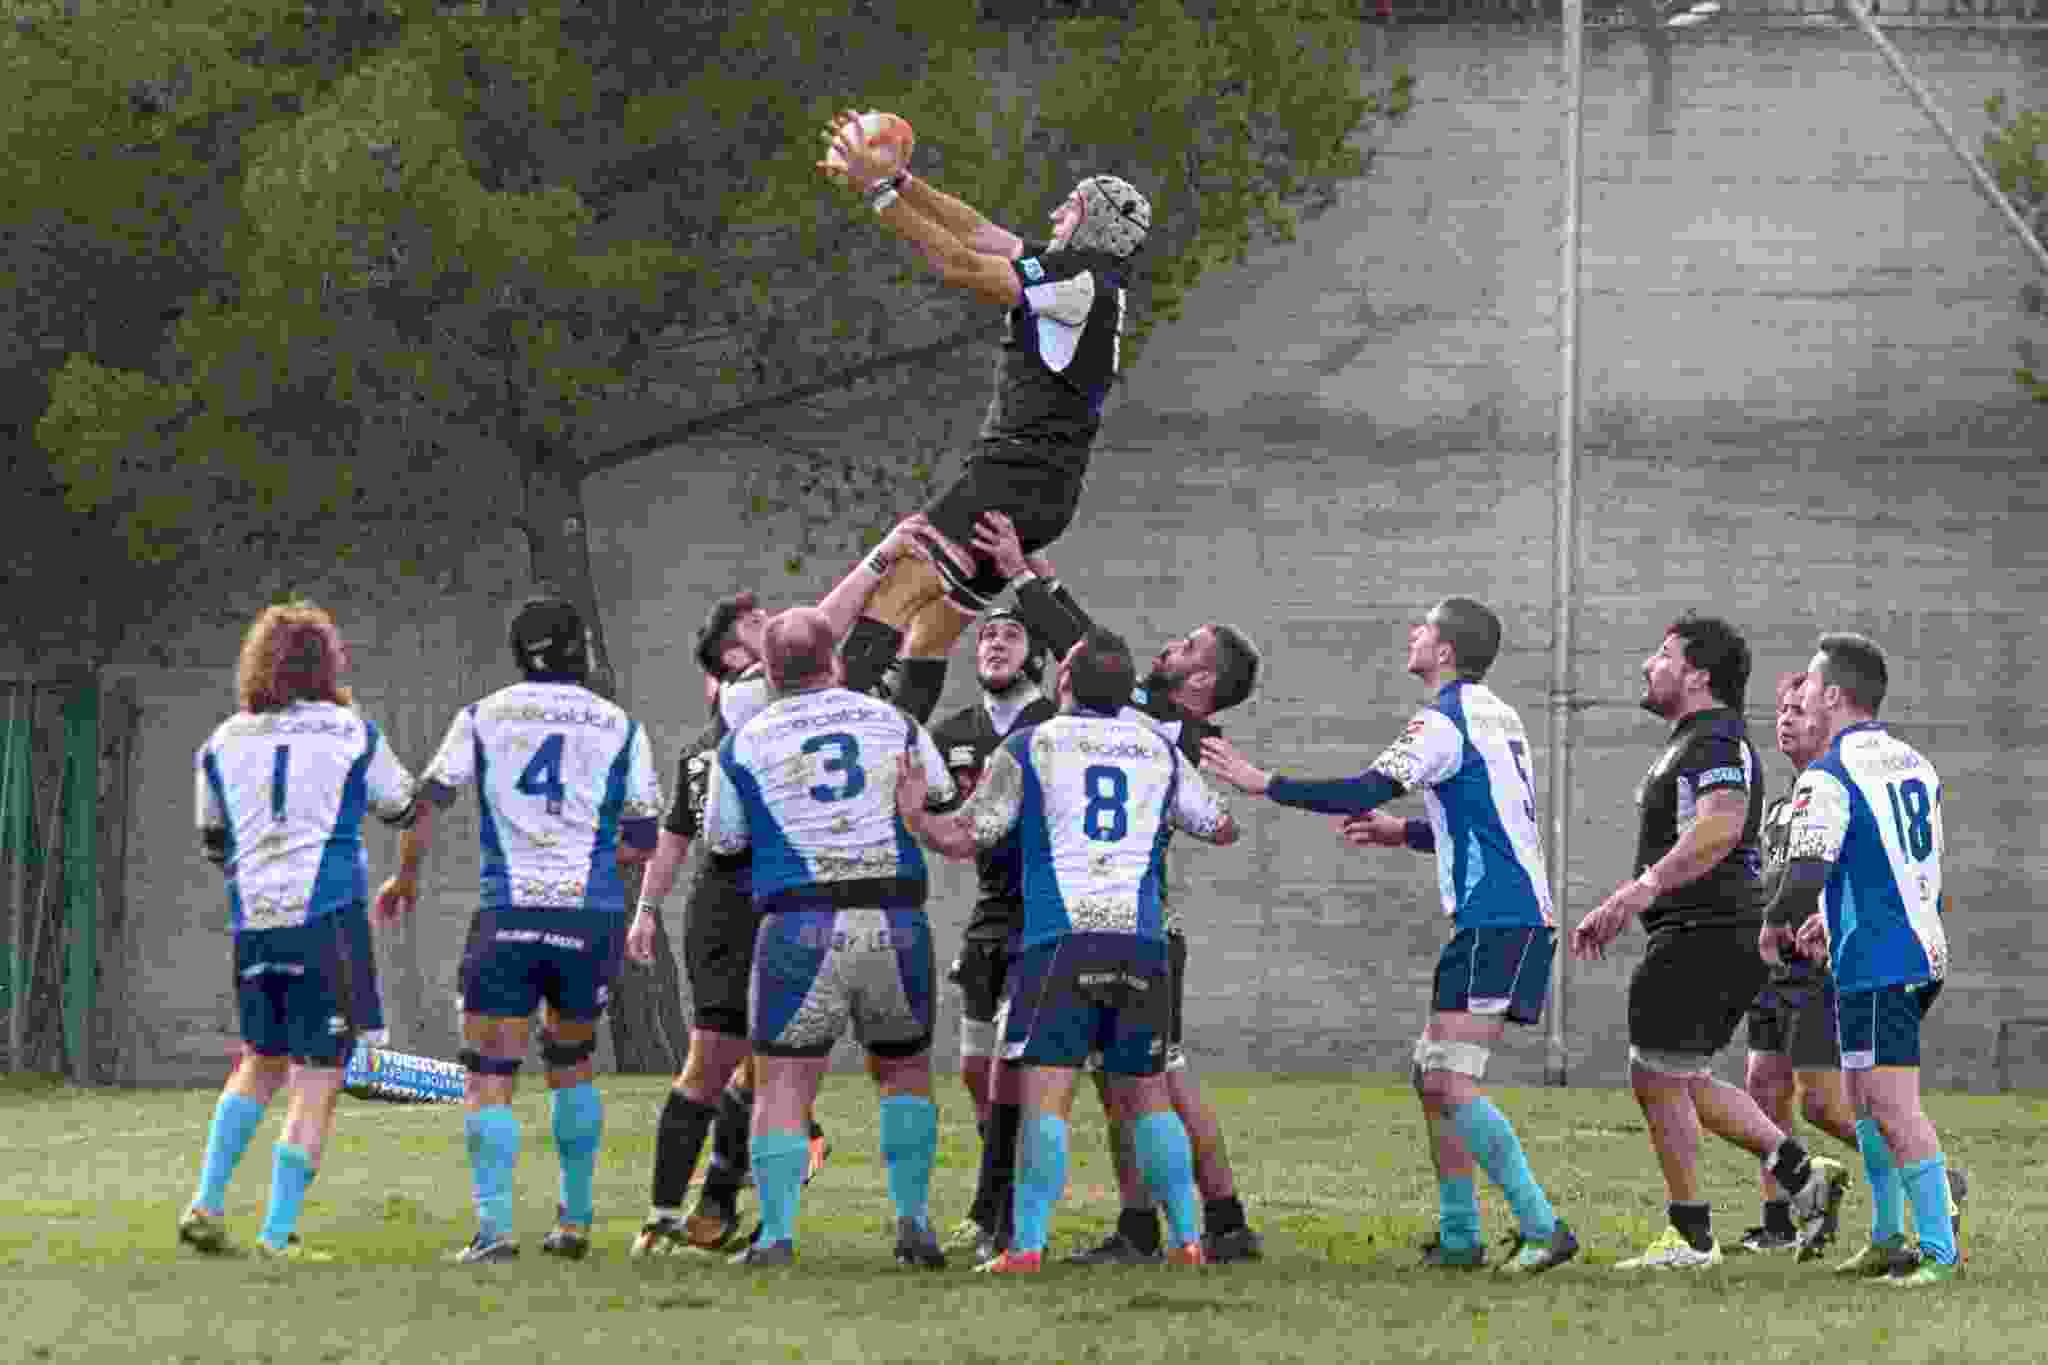 Rugby, riprende il cammino dell'Amatori Capoterra